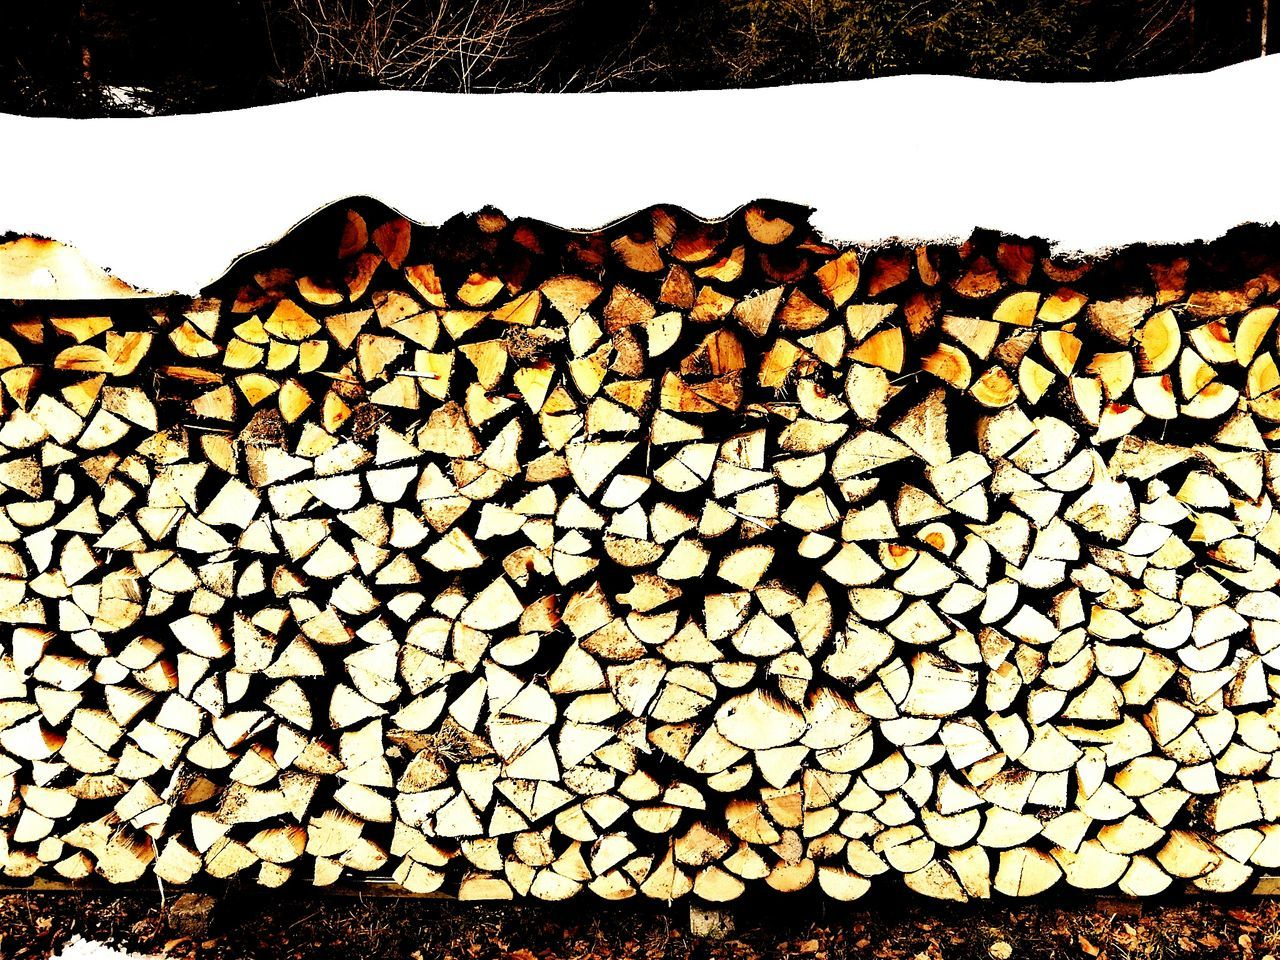 stack, firewood, timber, woodpile, log, abundance, heap, forestry industry, large group of objects, lumber industry, deforestation, pile, textured, no people, fuel and power generation, wood - material, day, industry, backgrounds, outdoors, close-up